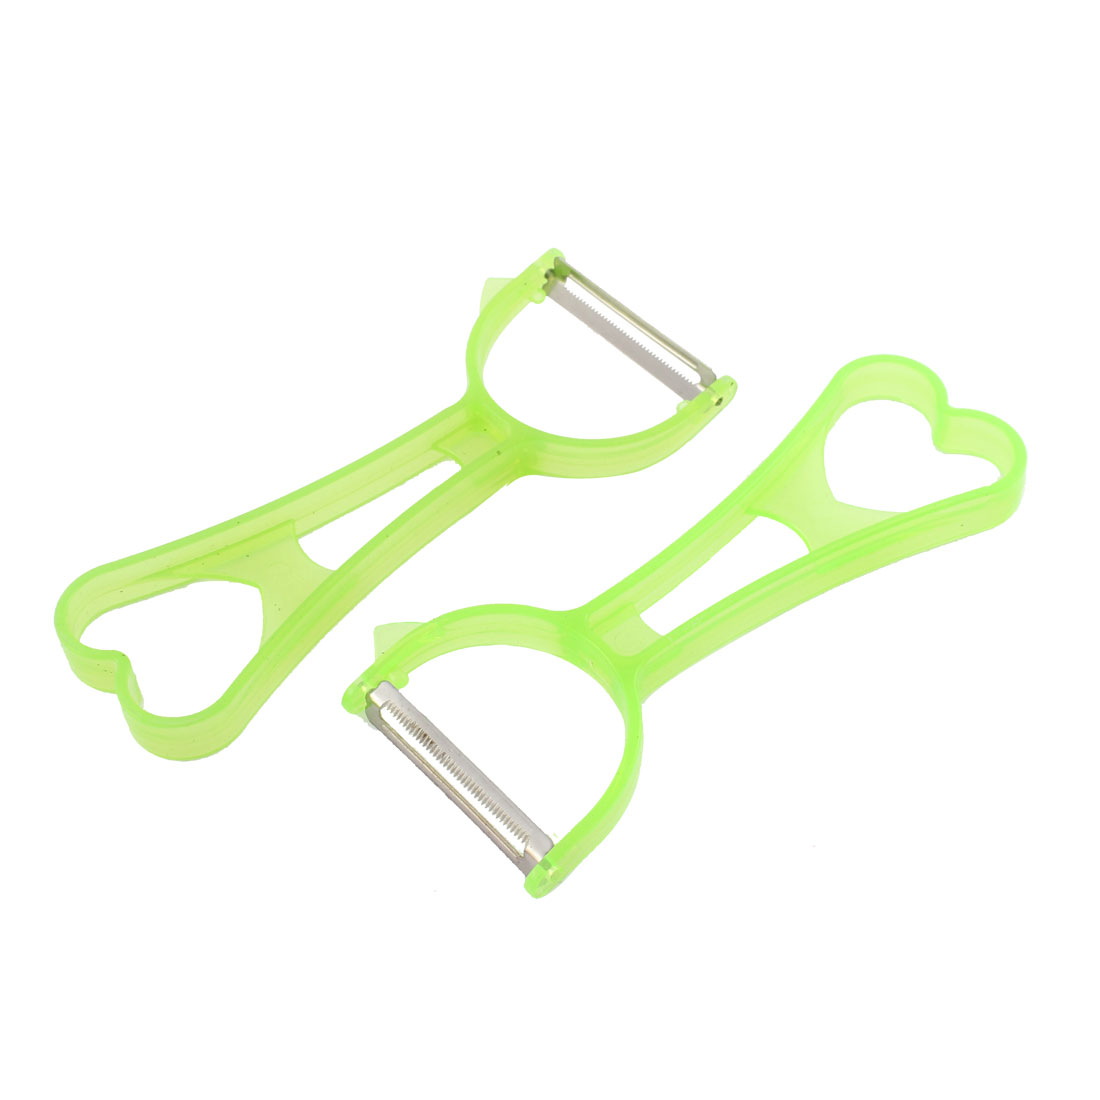 Green Heart Hole Handle Revolving Sawtooth Cutting Vegetable Fruit Peeler 2 Pcs